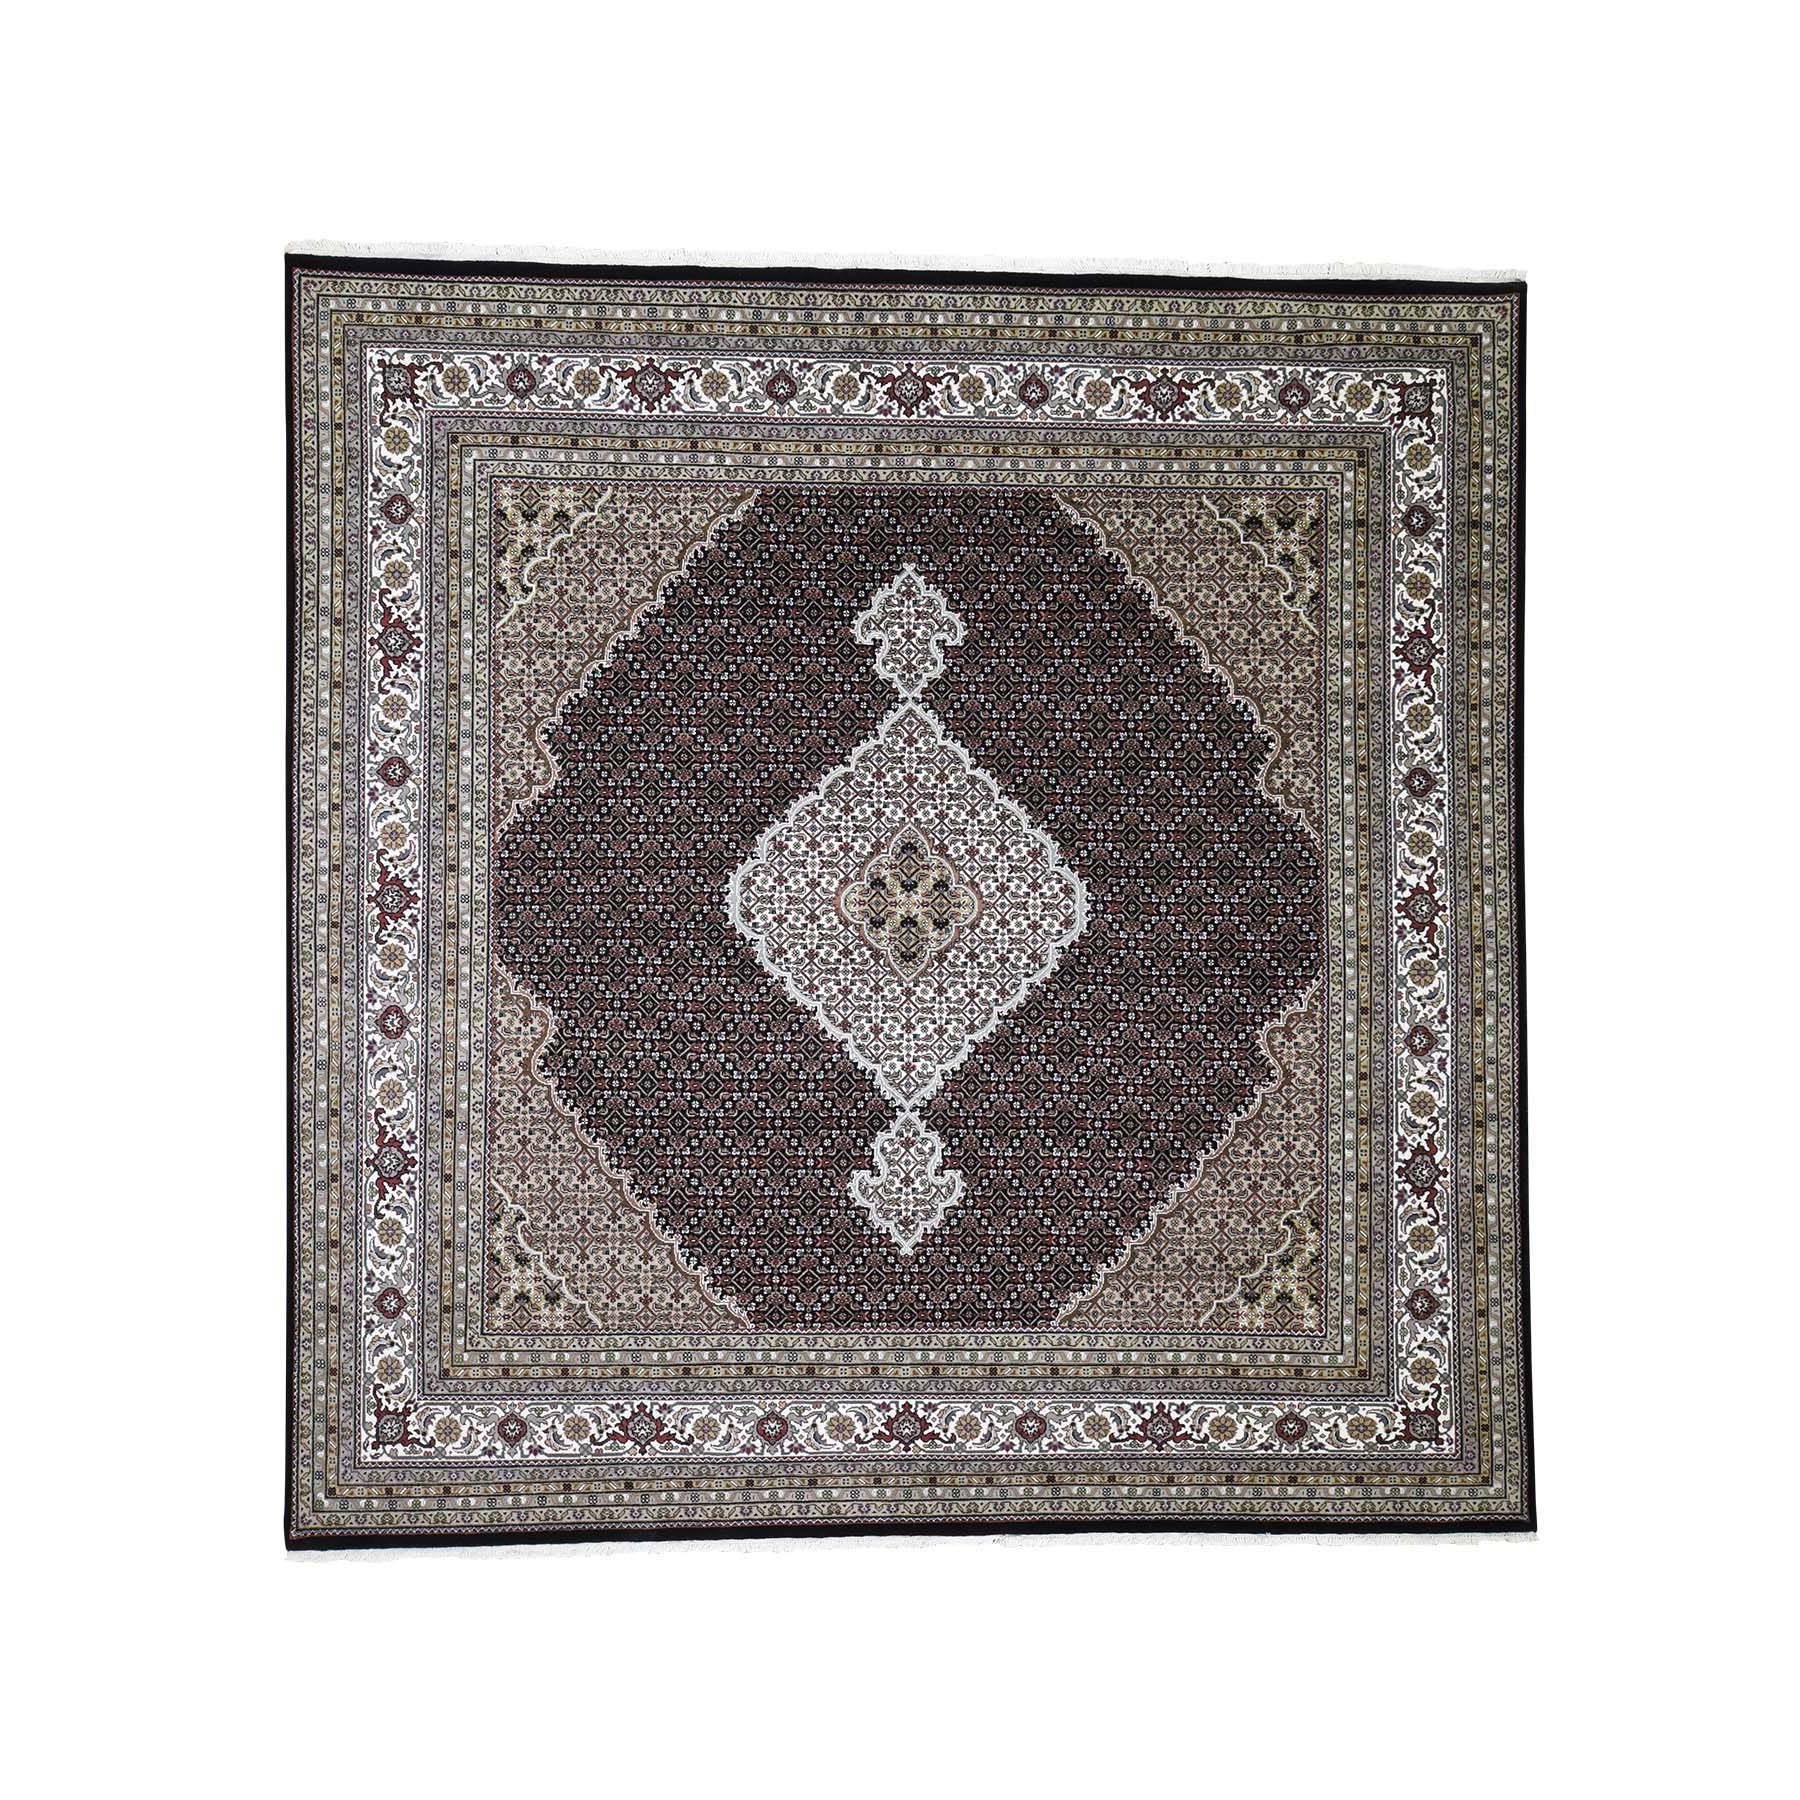 Pirniakan Collection Hand Knotted Black Rug No: 190038